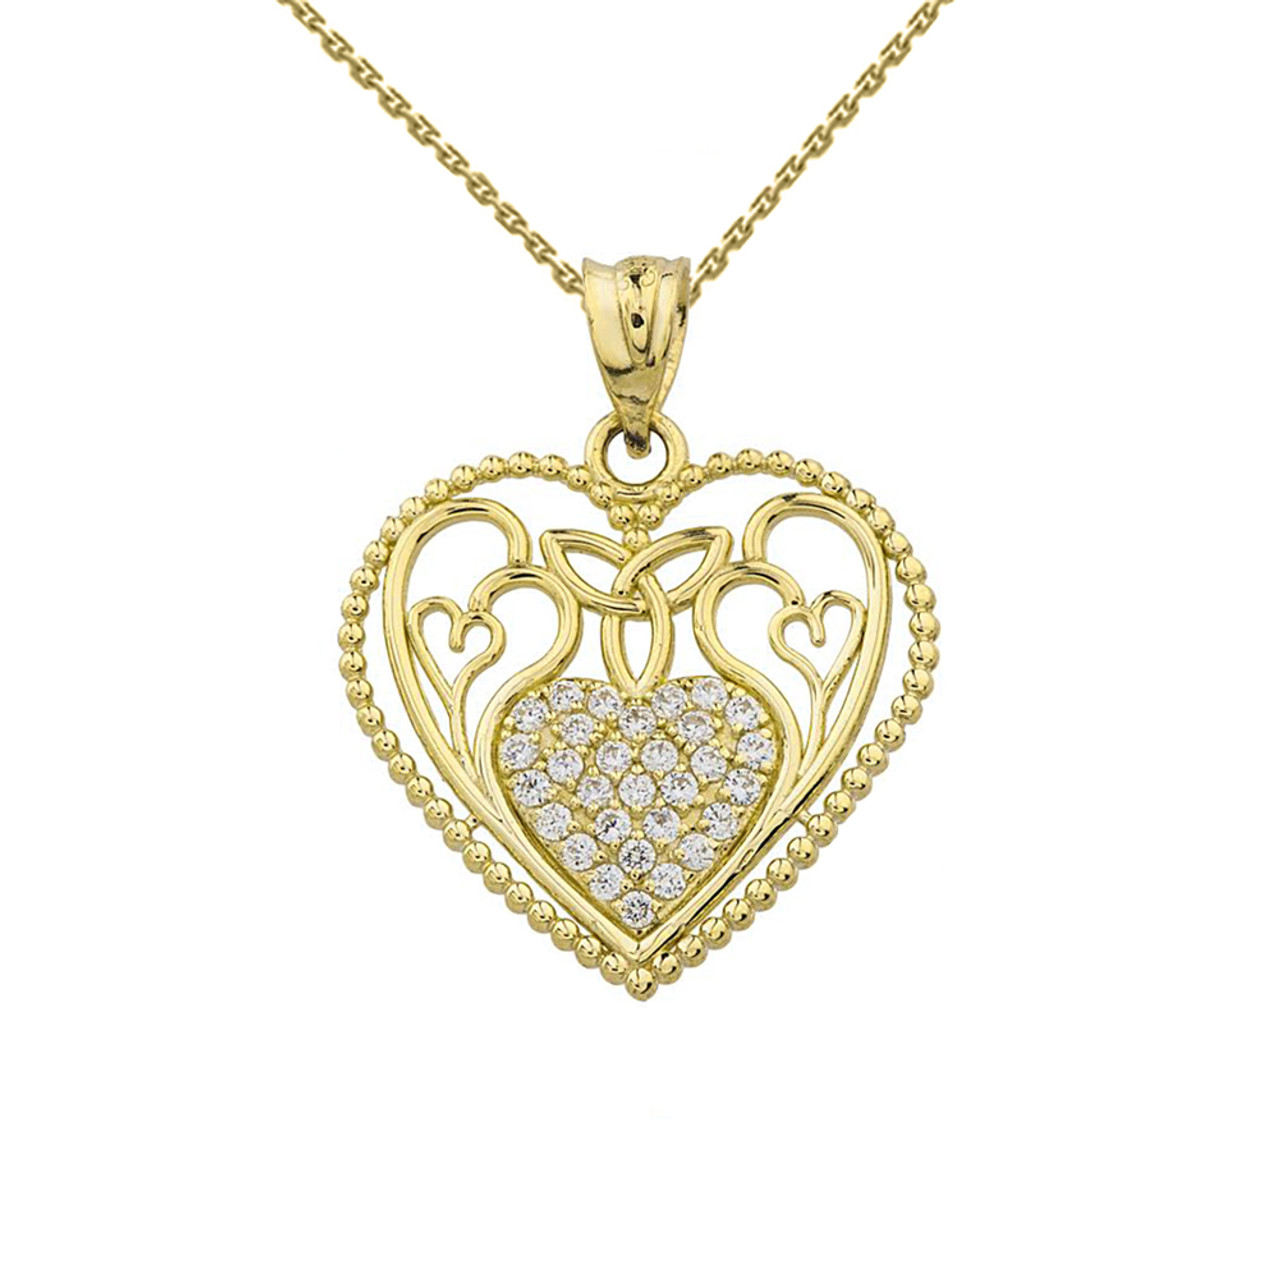 Diamond heart pendant with trinity knot and filigree hearts design diamond heart pendant with trinity knot and filigree hearts design in yellow gold aloadofball Gallery